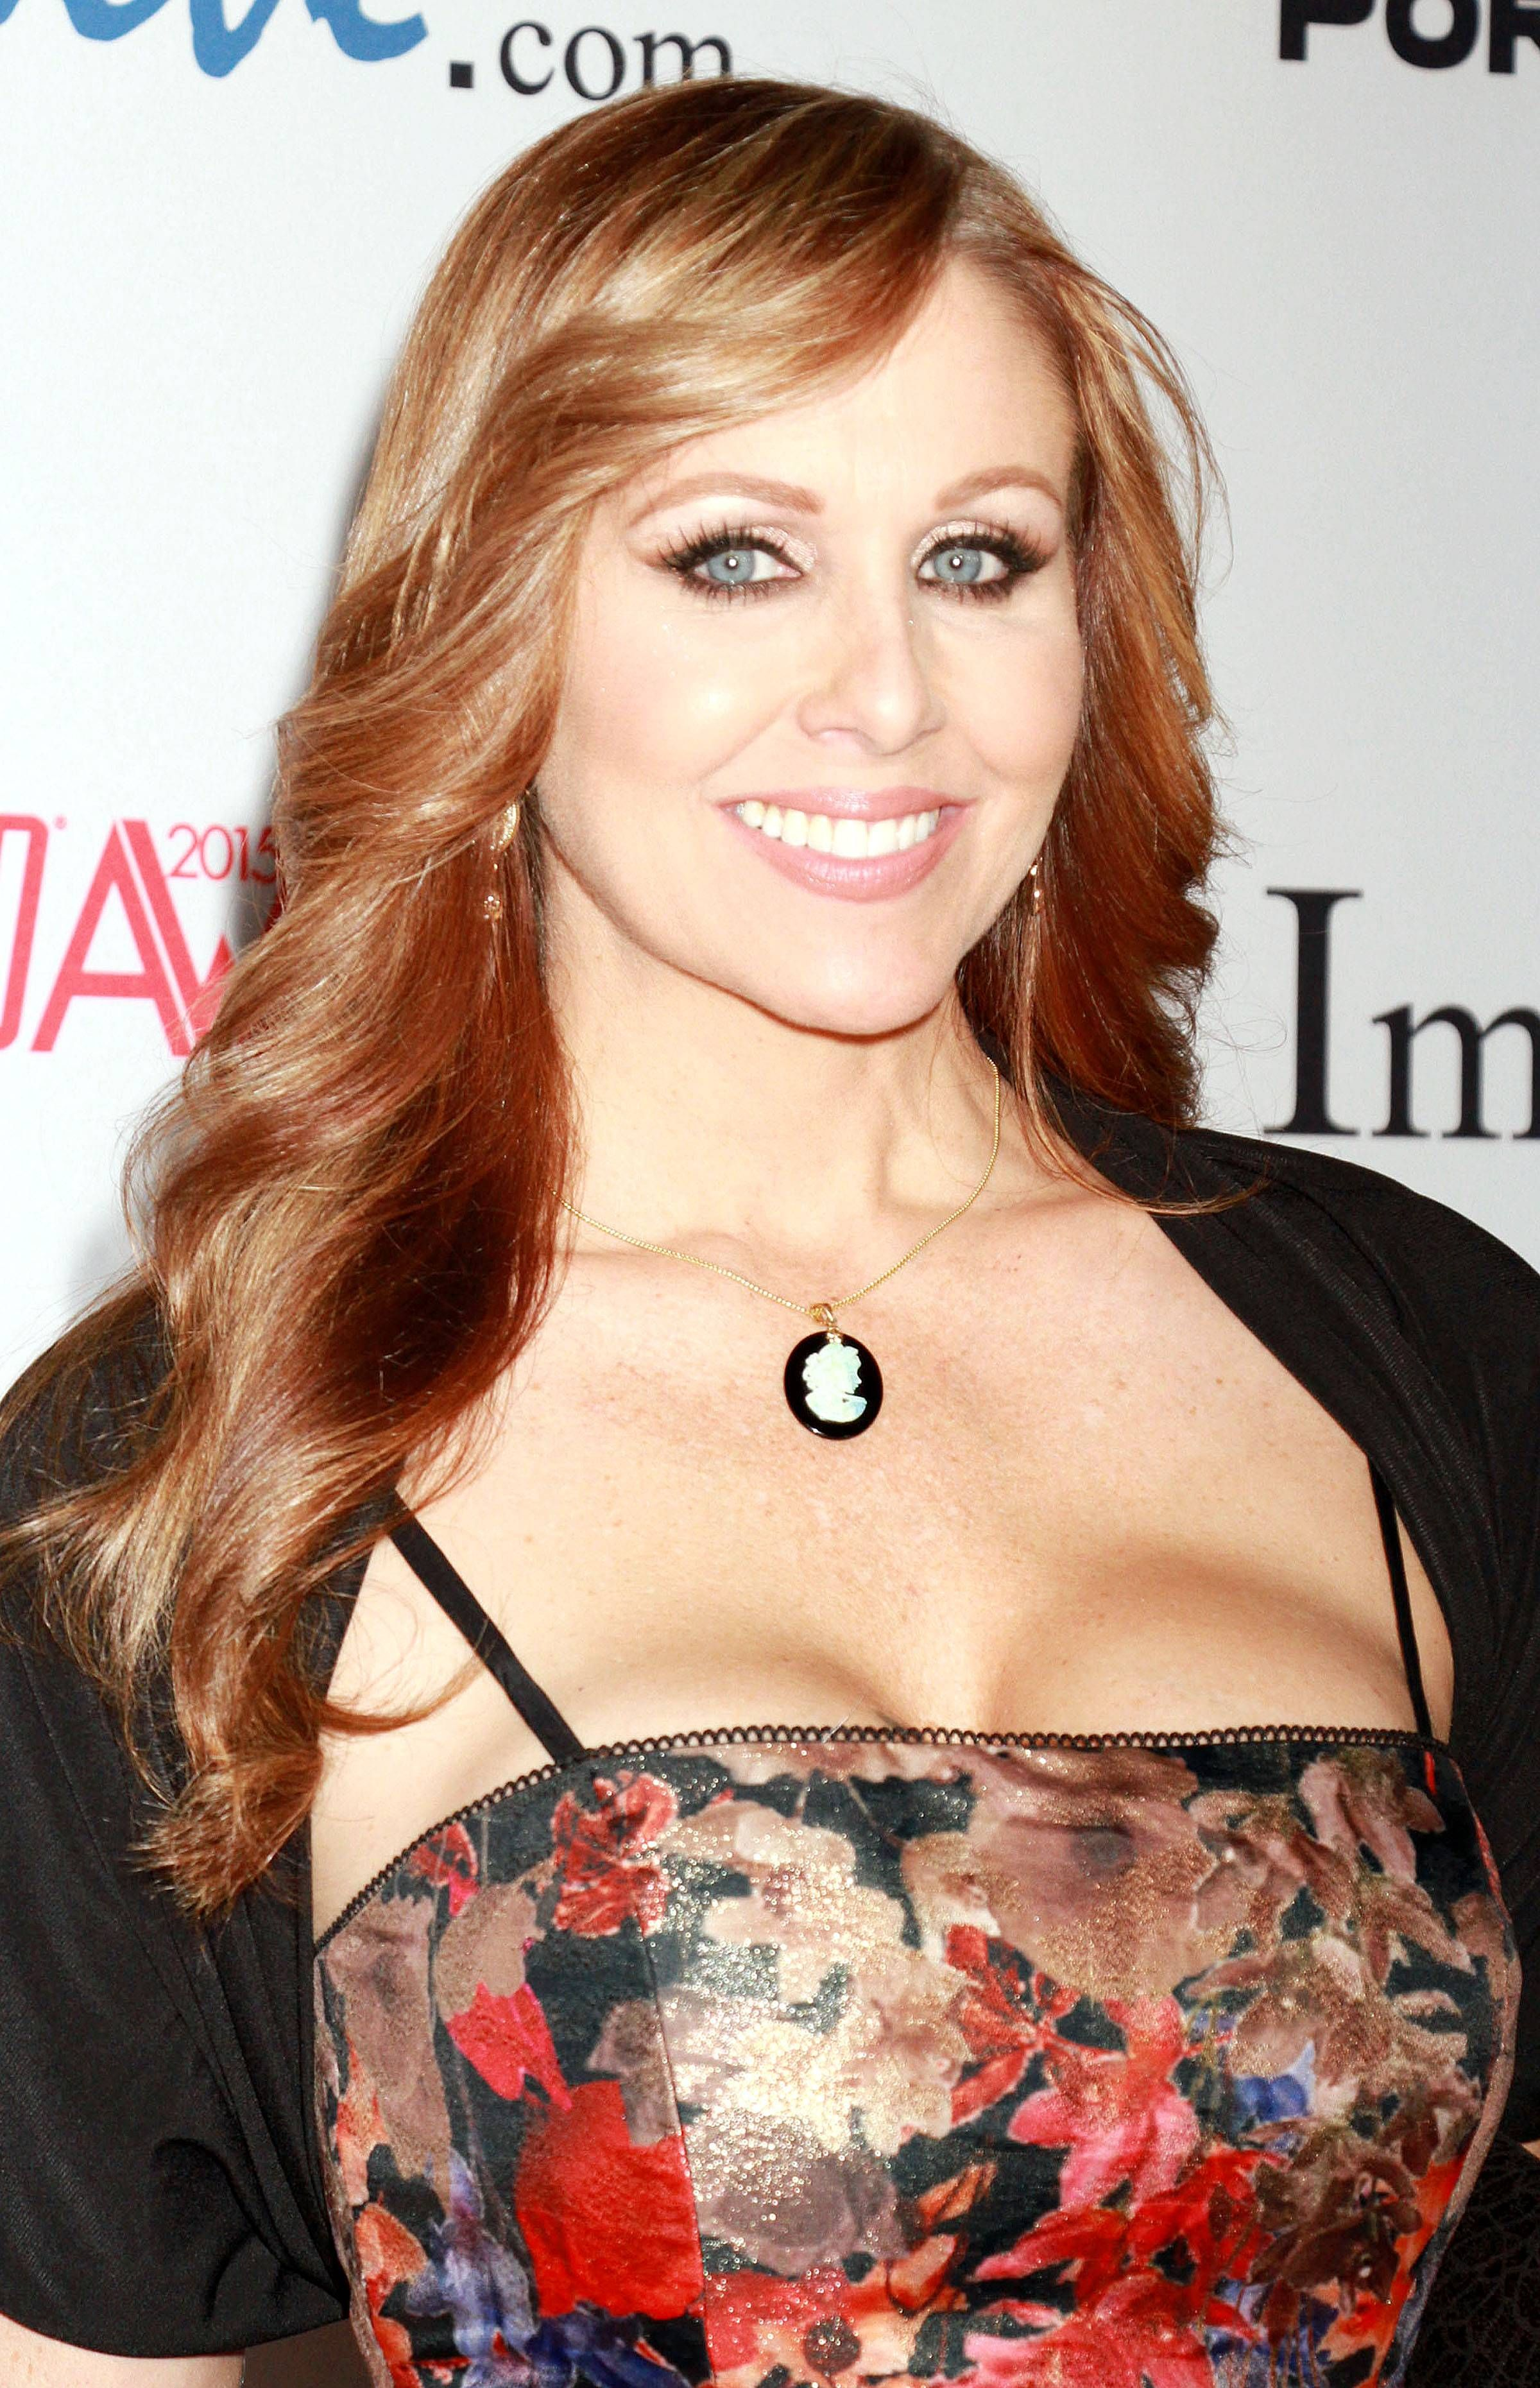 Porn Stars Julia Ann  Tori Black  Teagan Presley   others   2015 AVN Awards. Porn Stars Julia Ann  Tori Black  Teagan Presley   others   2015